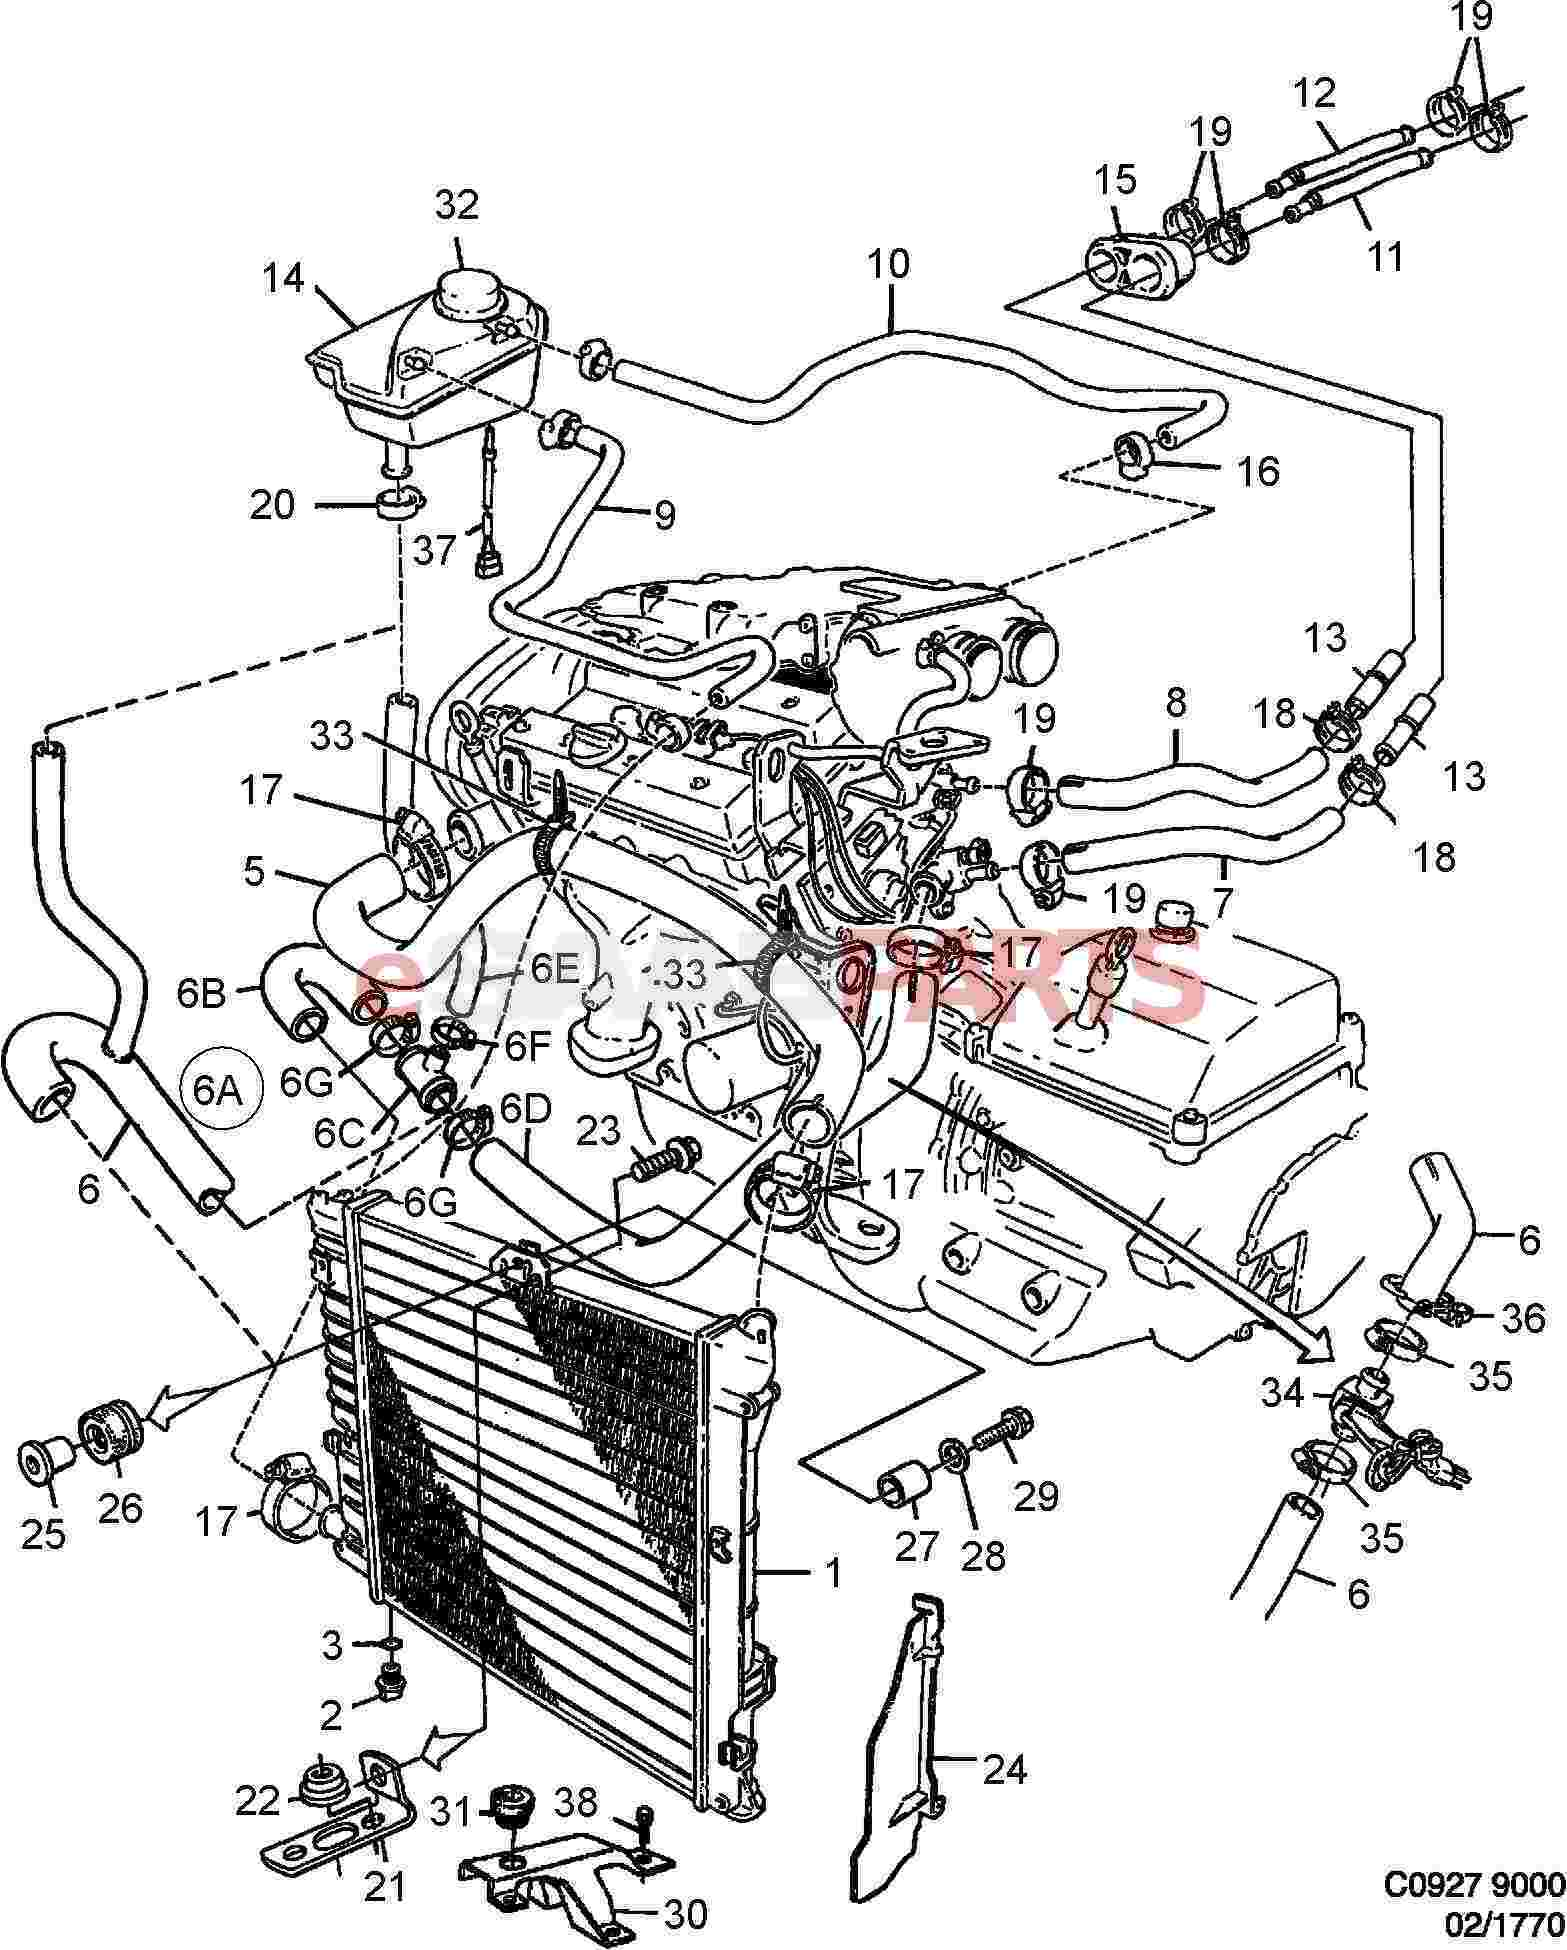 00 Audi Tt Coolant Hose Diagram Reinvent Your Wiring Fuse 2001 Saab 900 Electrical Diagrams U2022 Rh 45 77 189 151 Parts